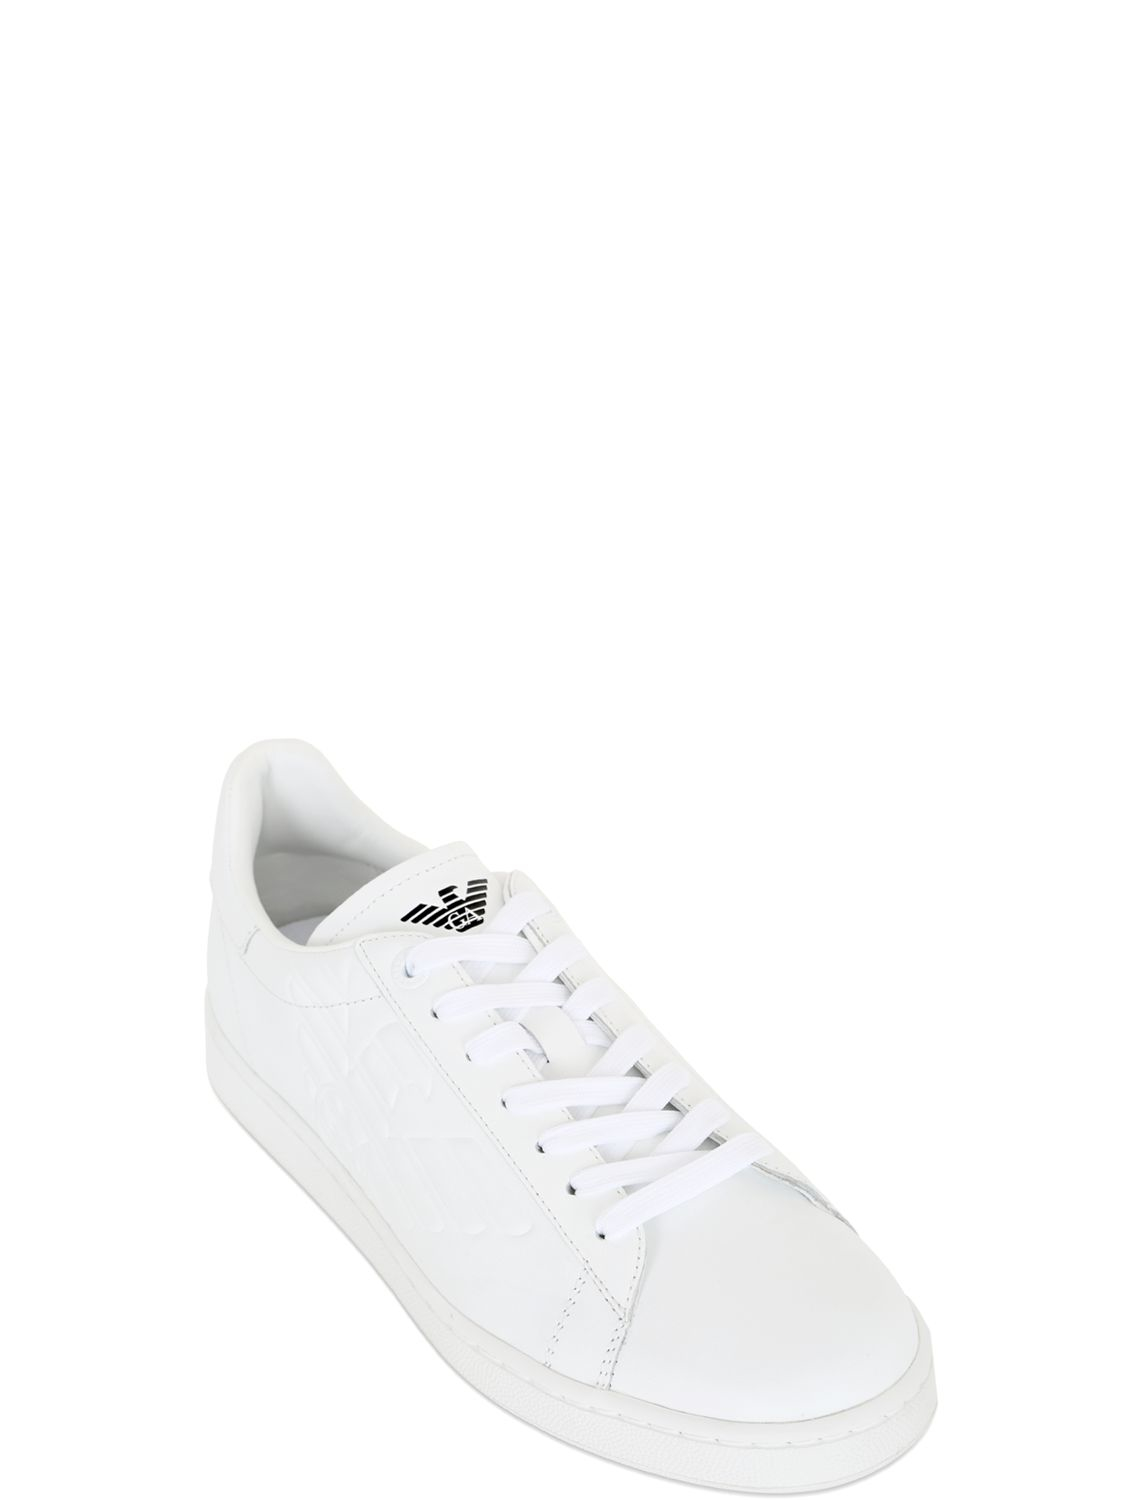 Emporio Armani classic logo sneakers sale great deals cheap sale amazing price discount top quality outlet pay with paypal 0yPKF2riu